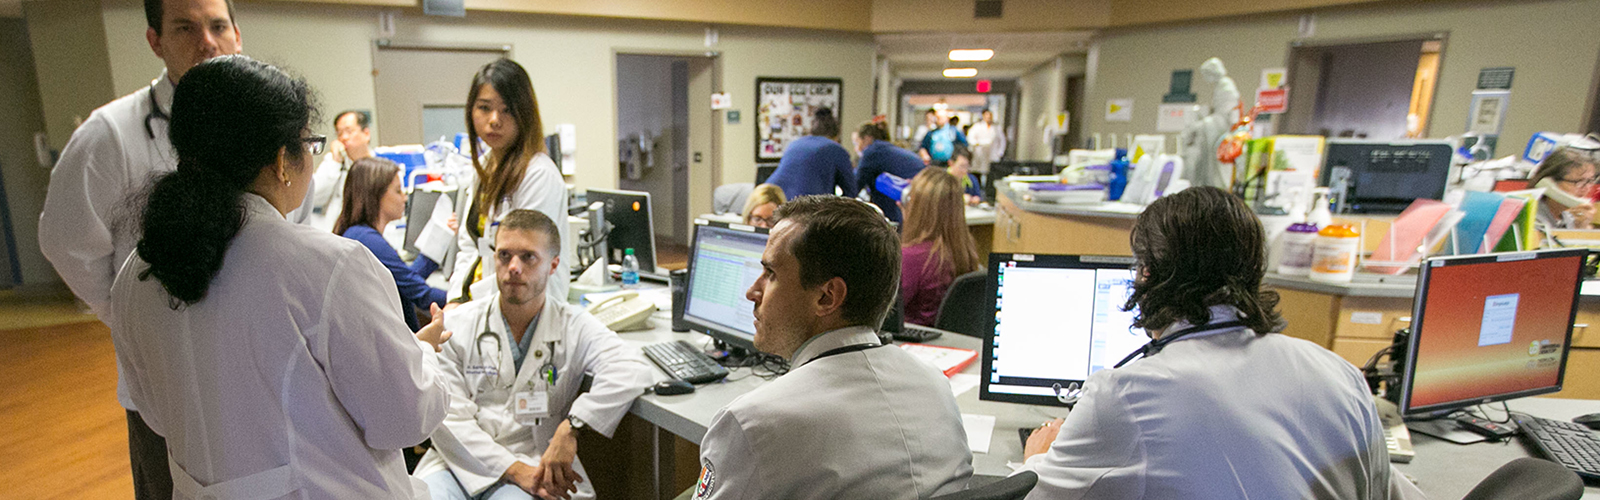 Residents and fellows at Creighton University School of Medicine